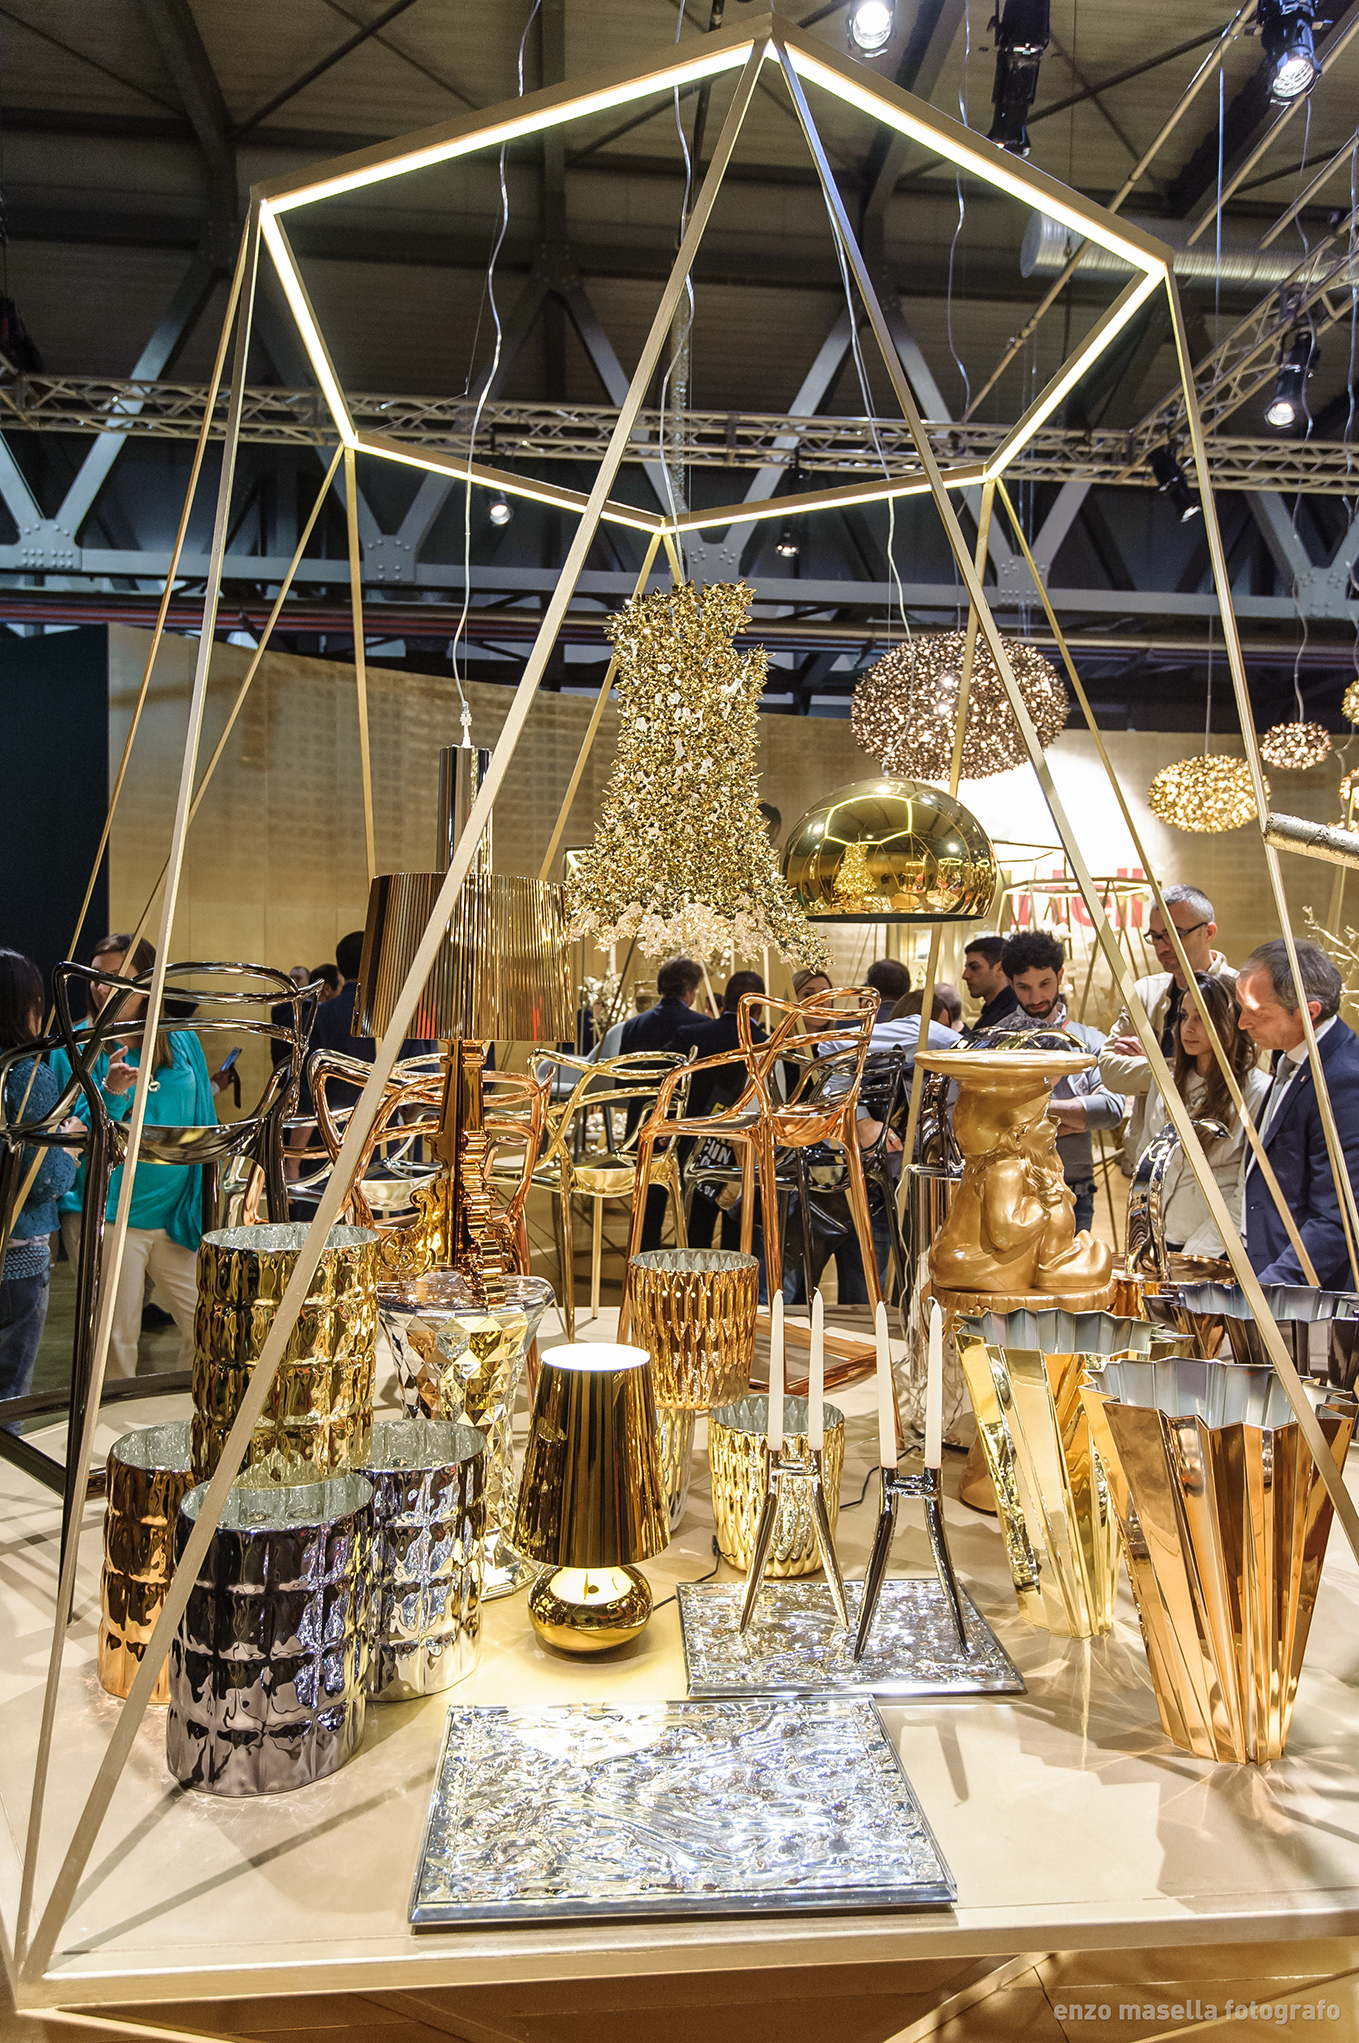 Anteprima milano design week 2014 attico interni for Eventi milano design week